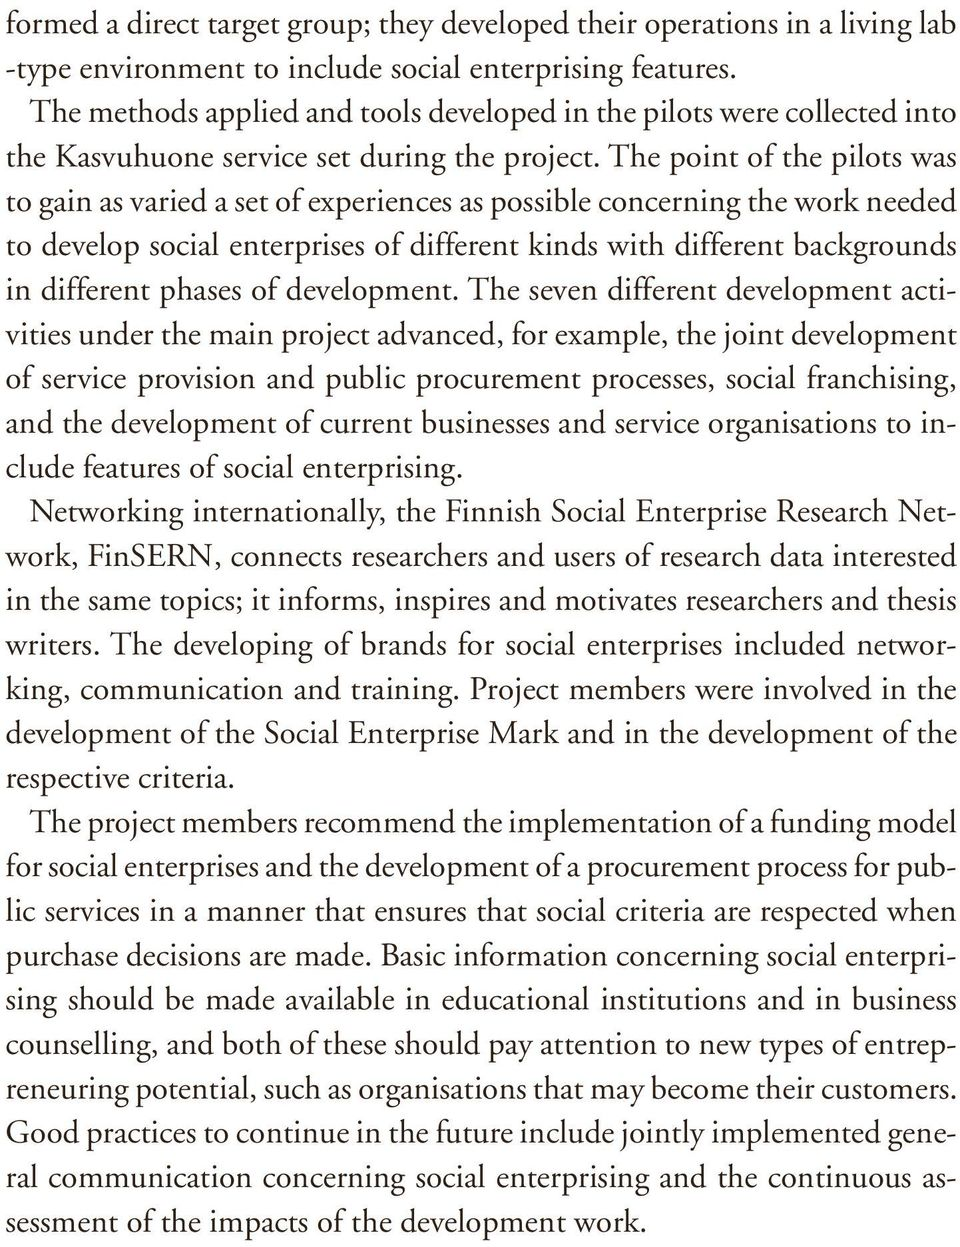 The point of the pilots was to gain as varied a set of experiences as possible concerning the work needed to develop social enterprises of different kinds with different backgrounds in different